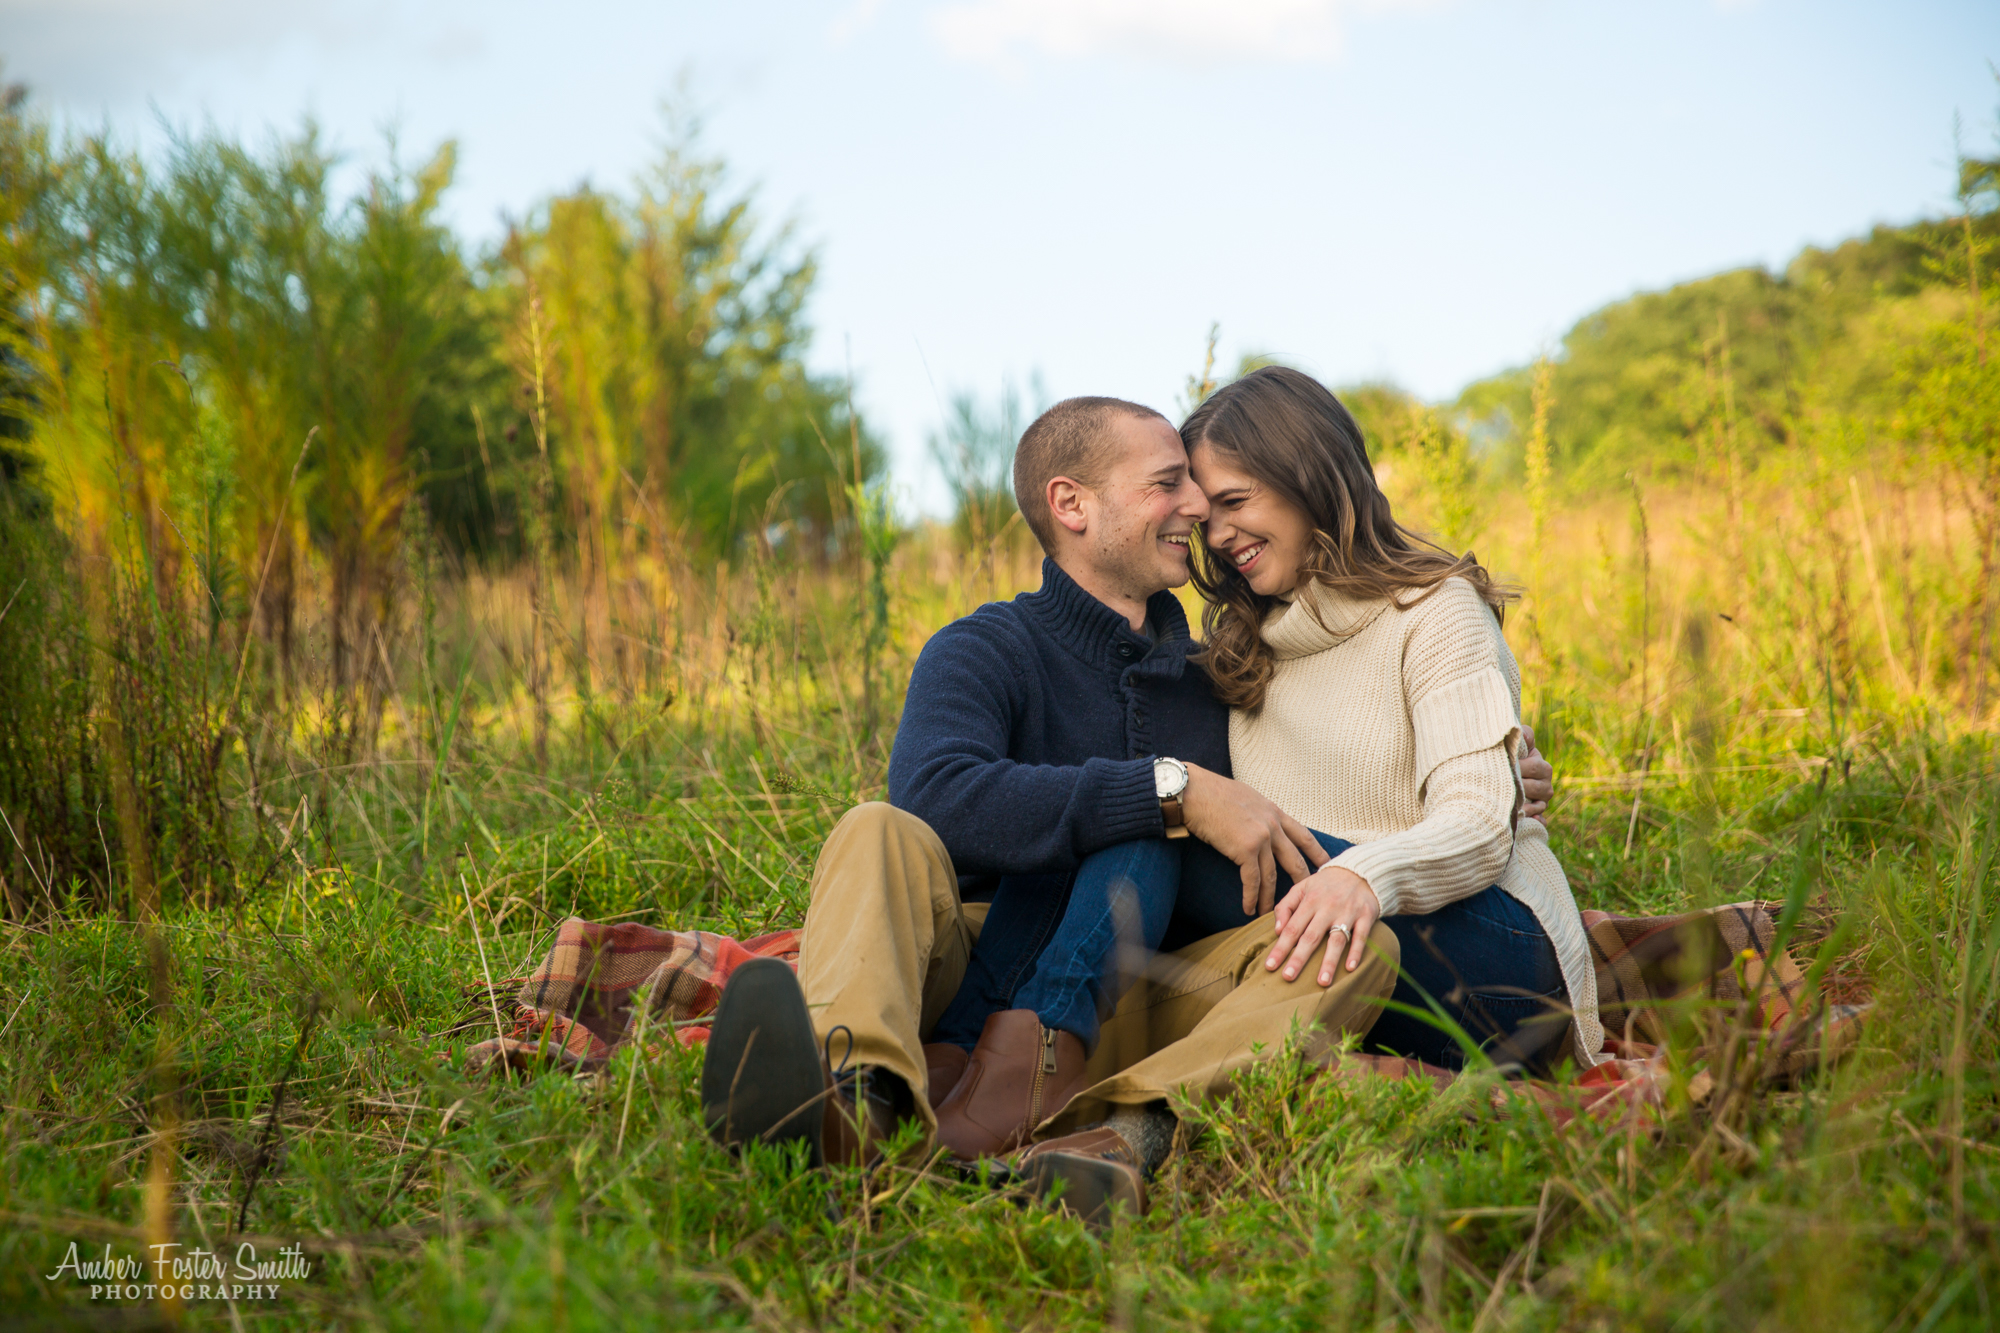 Amber Foster Smith Photography - Holly Springs, NC   Raleigh Engagement and Wedding Photographer